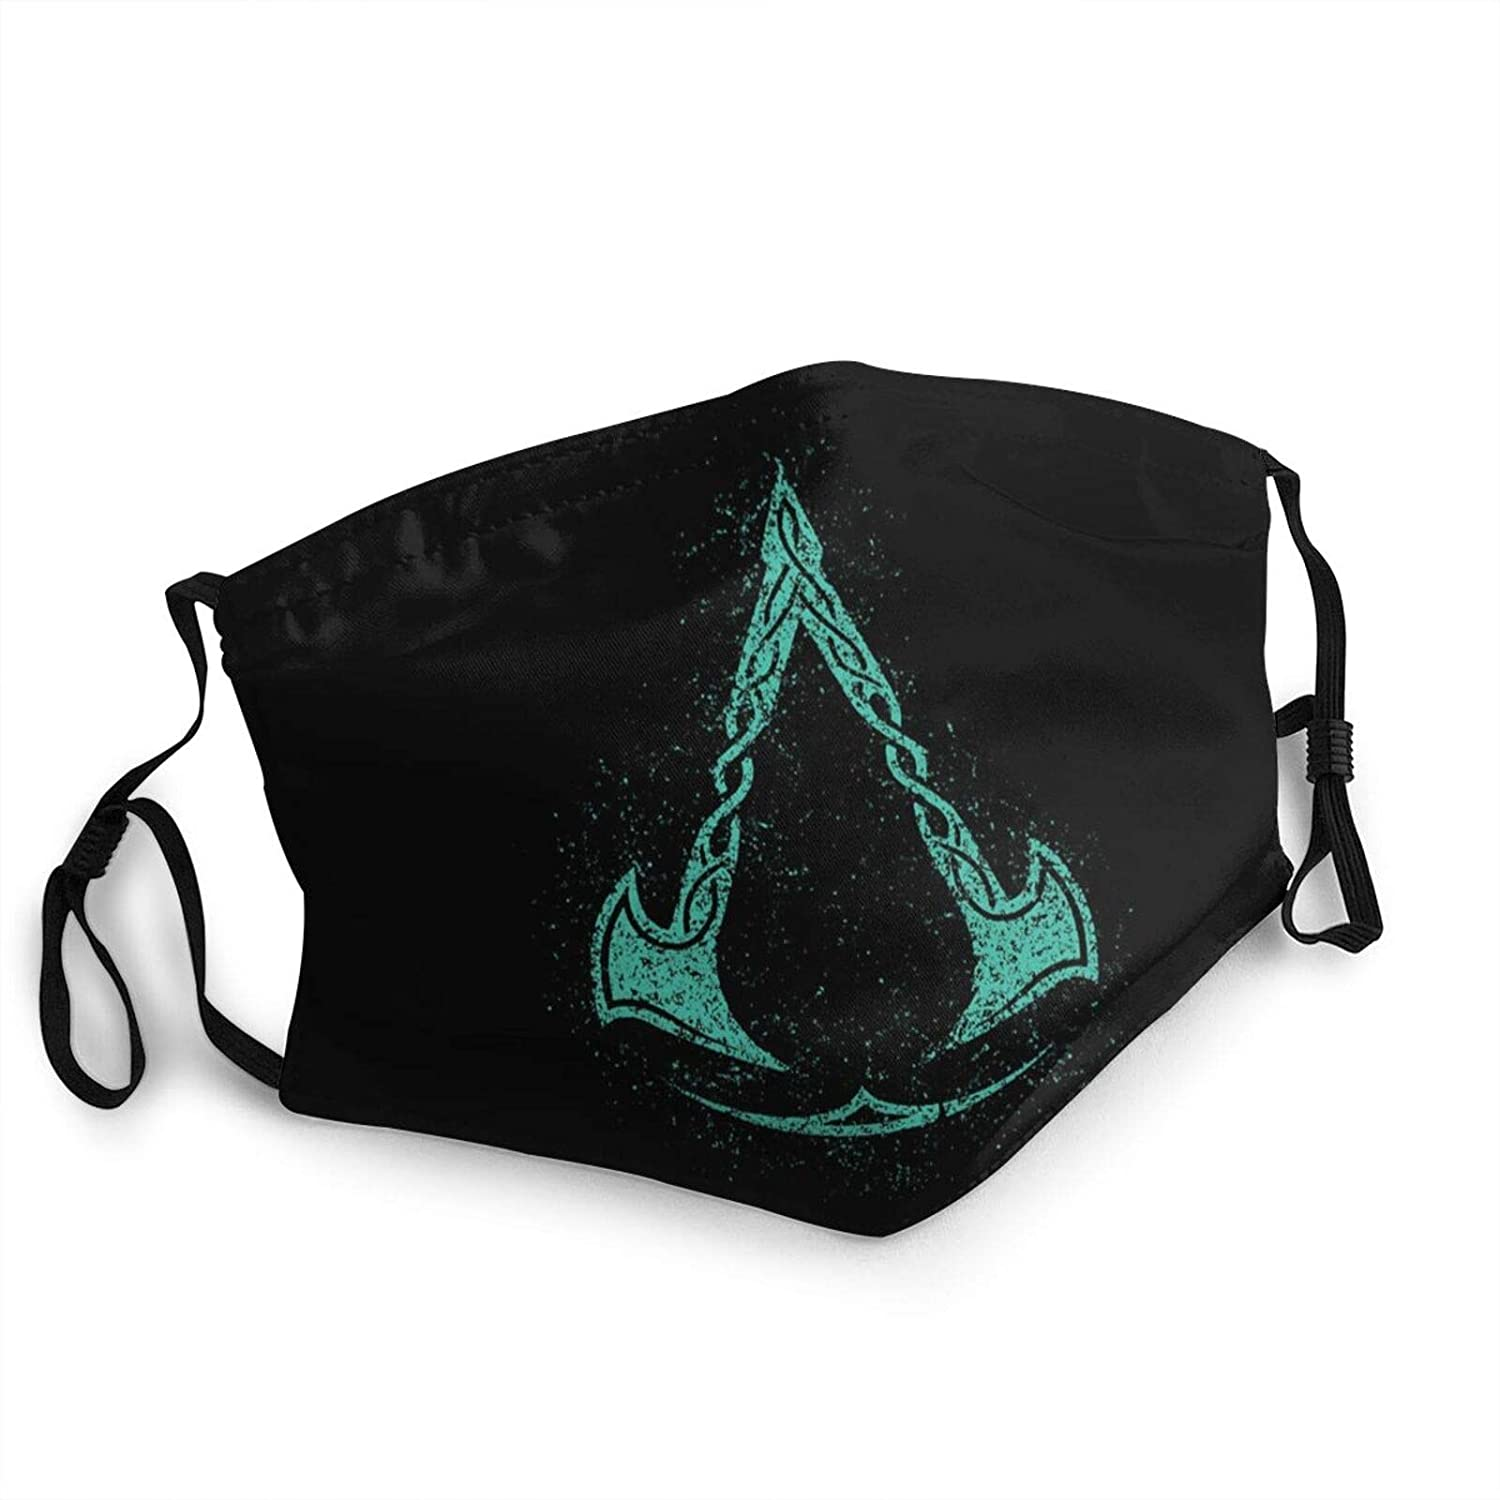 Adult Assassin's Creed Mask Particulate Respirator Anti UV Portable for Pollen